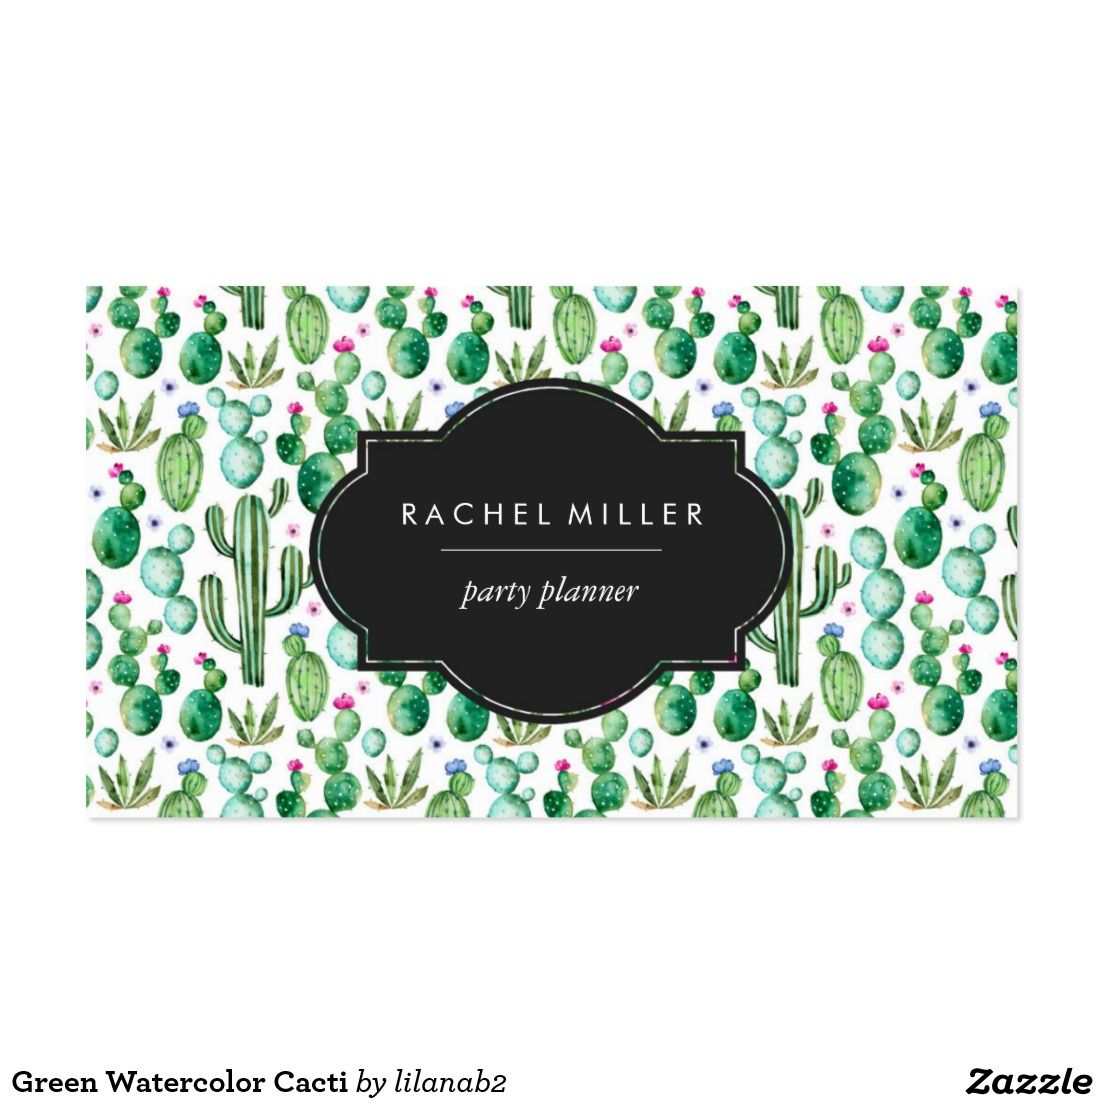 Green watercolor cacti business card zazzle zazzle businesscards green watercolor cacti business card zazzle zazzle businesscards watercolor cactus reheart Gallery